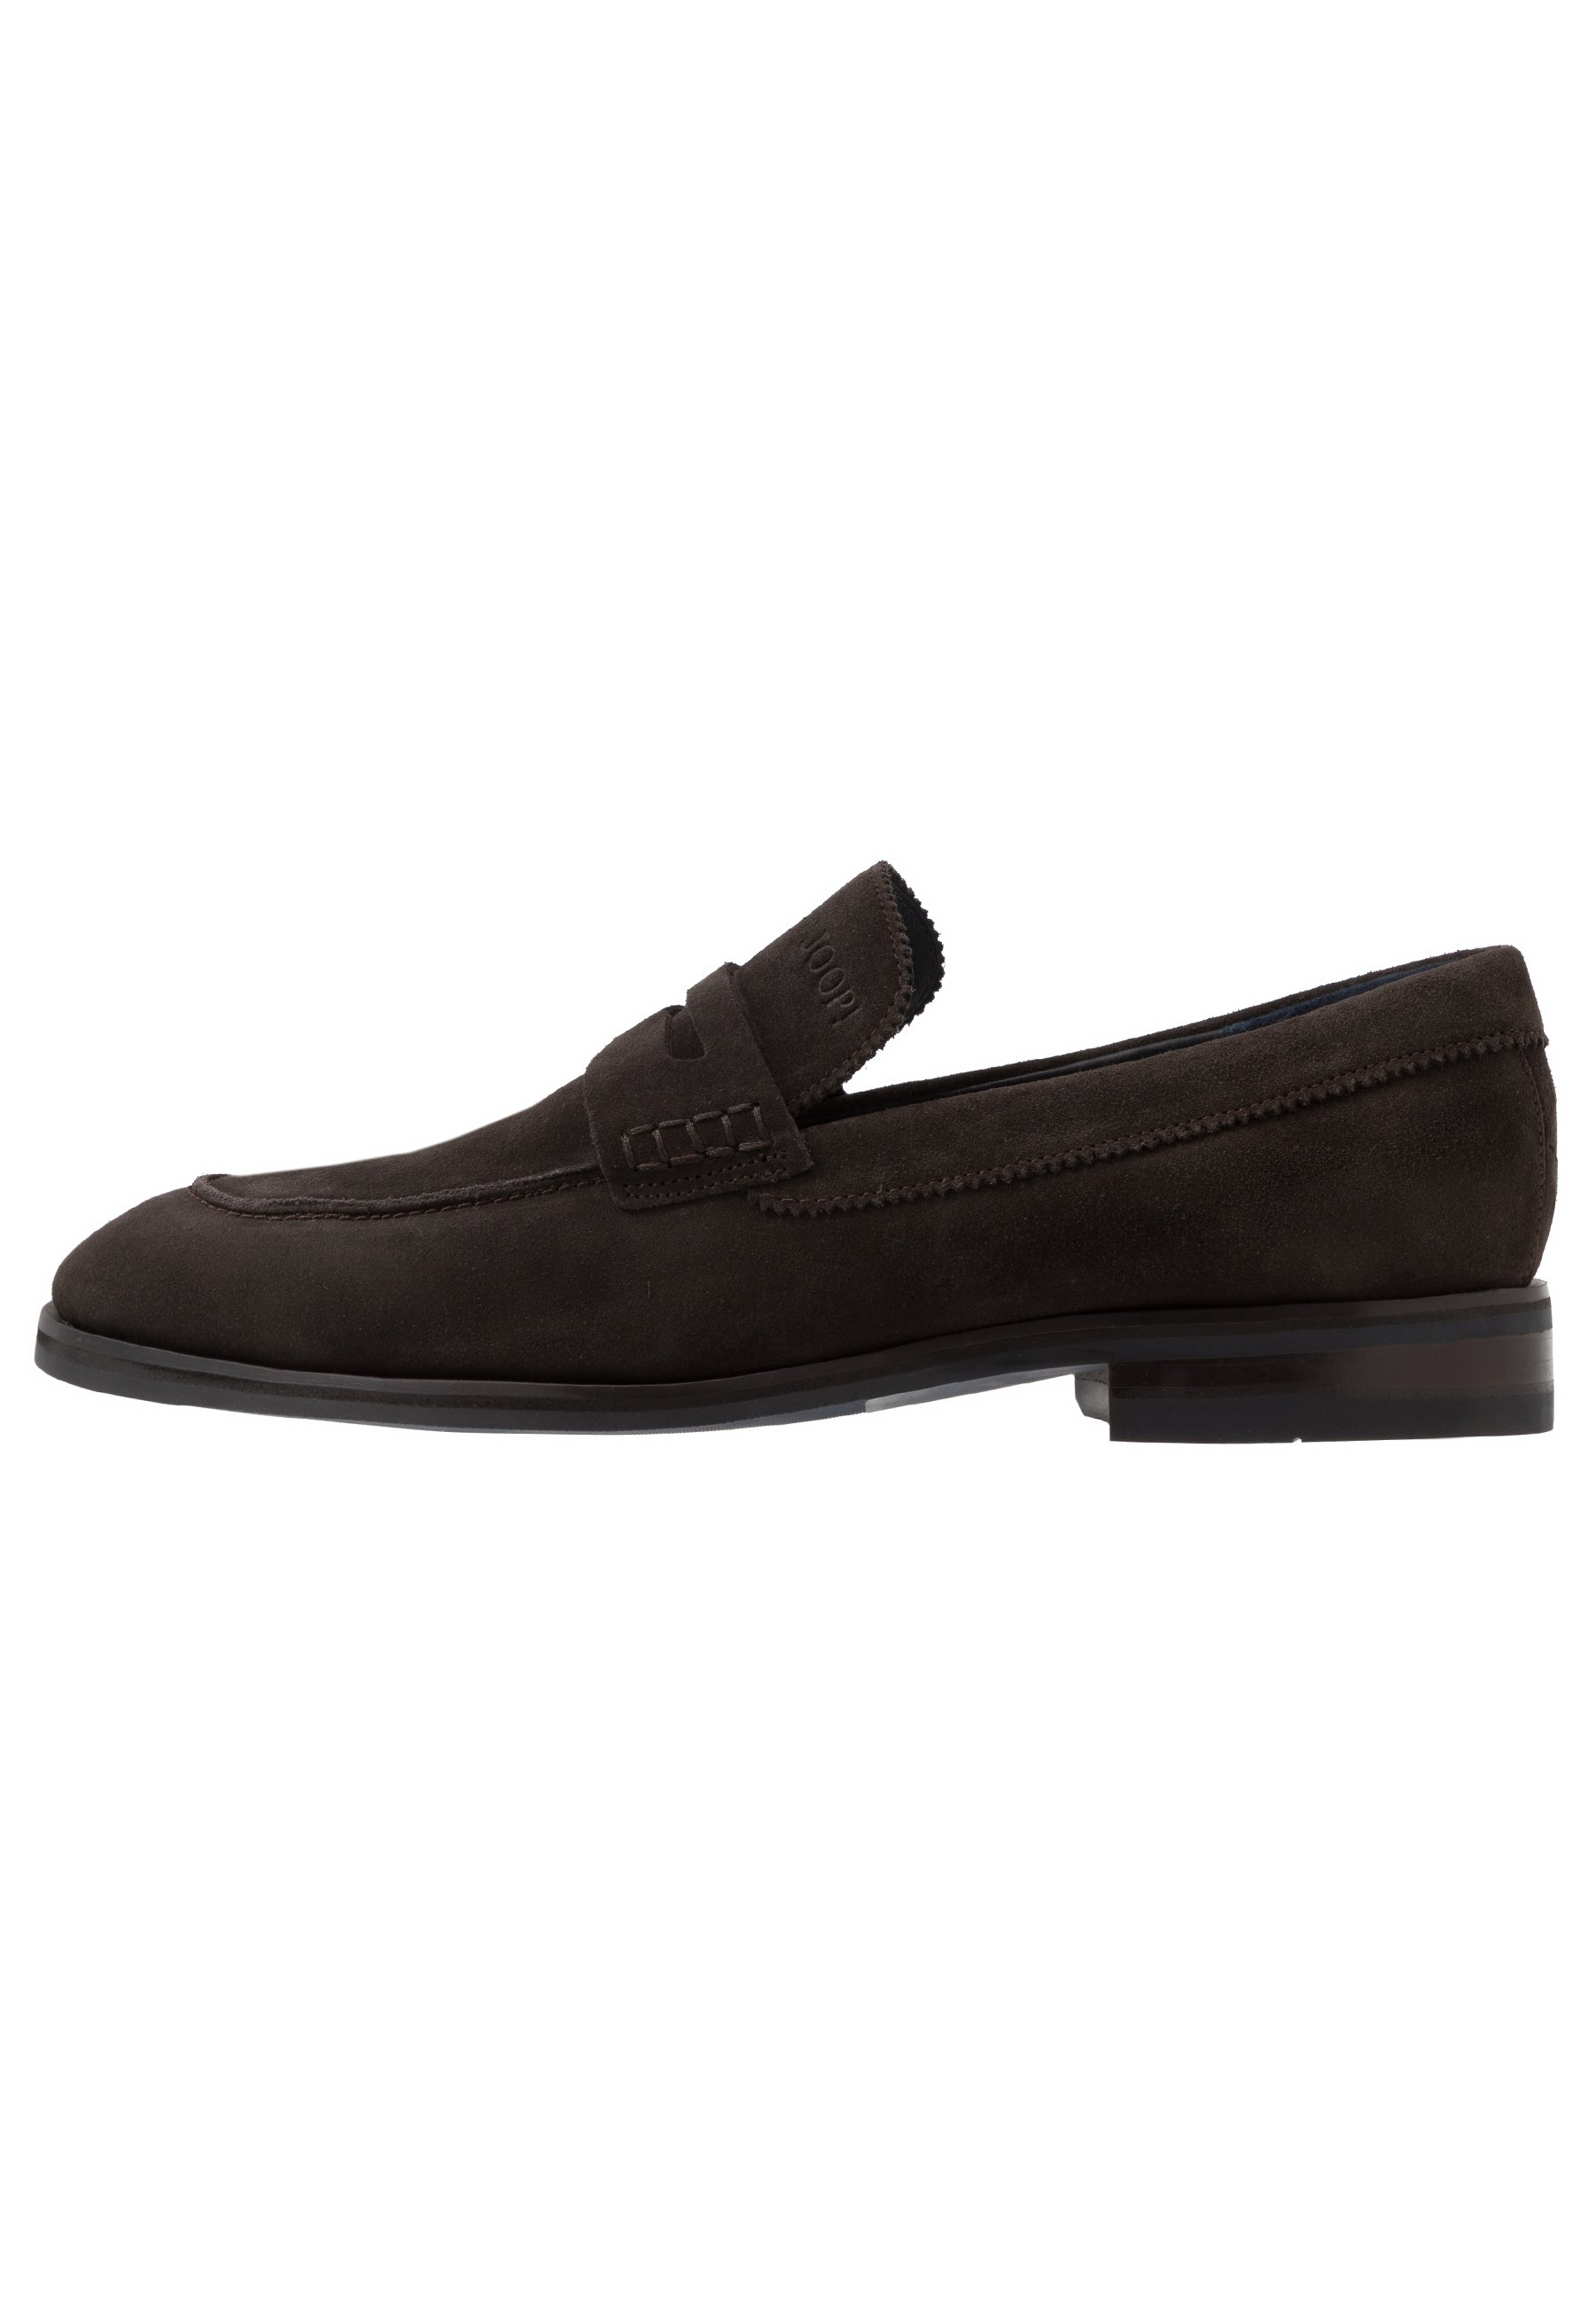 KLEITOS LOAFER Slip ins dark brown